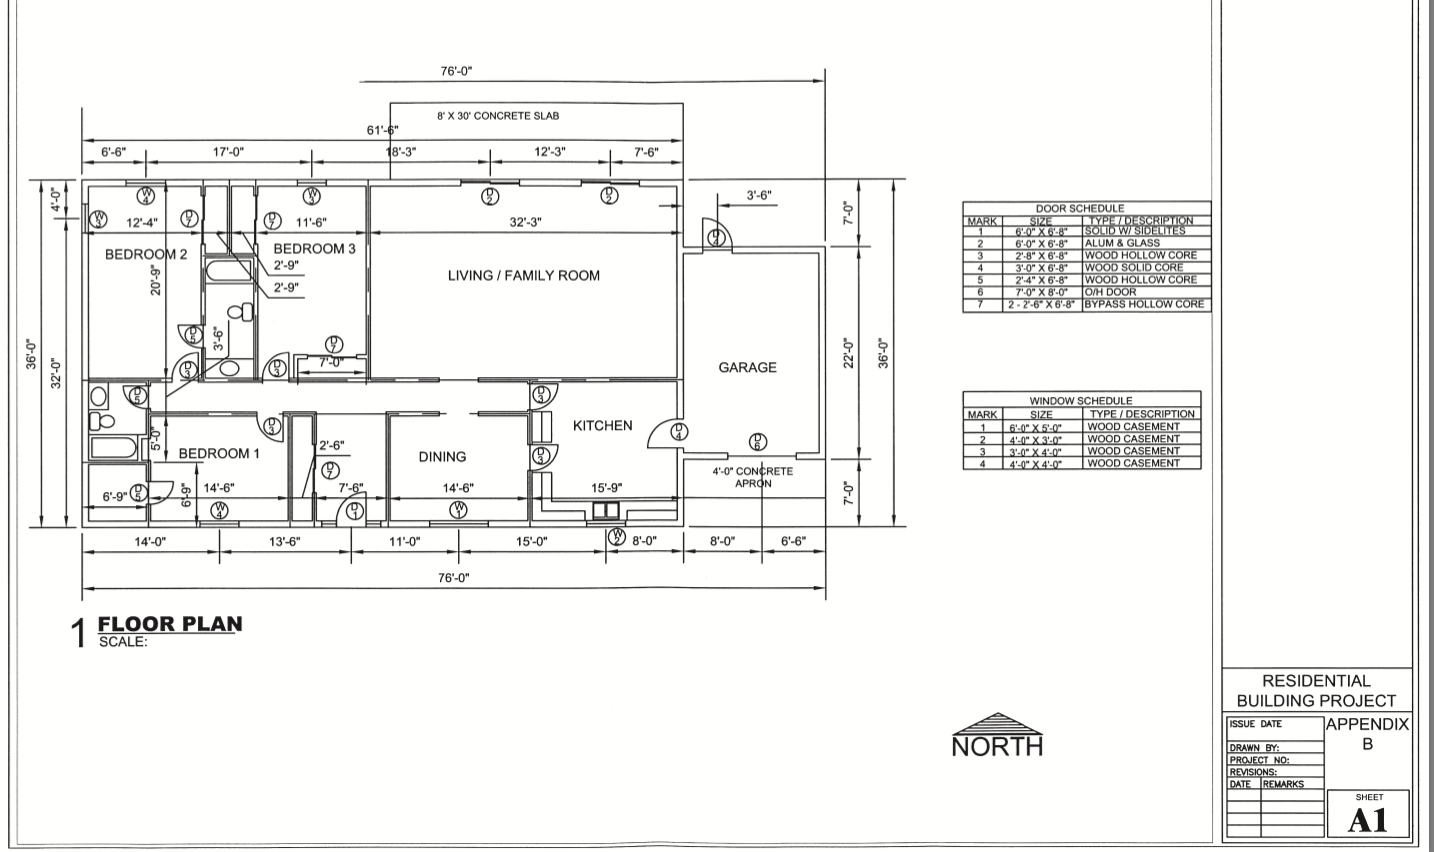 foundation wall diagram solved foundation wall assuming a concrete foundation wa  solved foundation wall assuming a